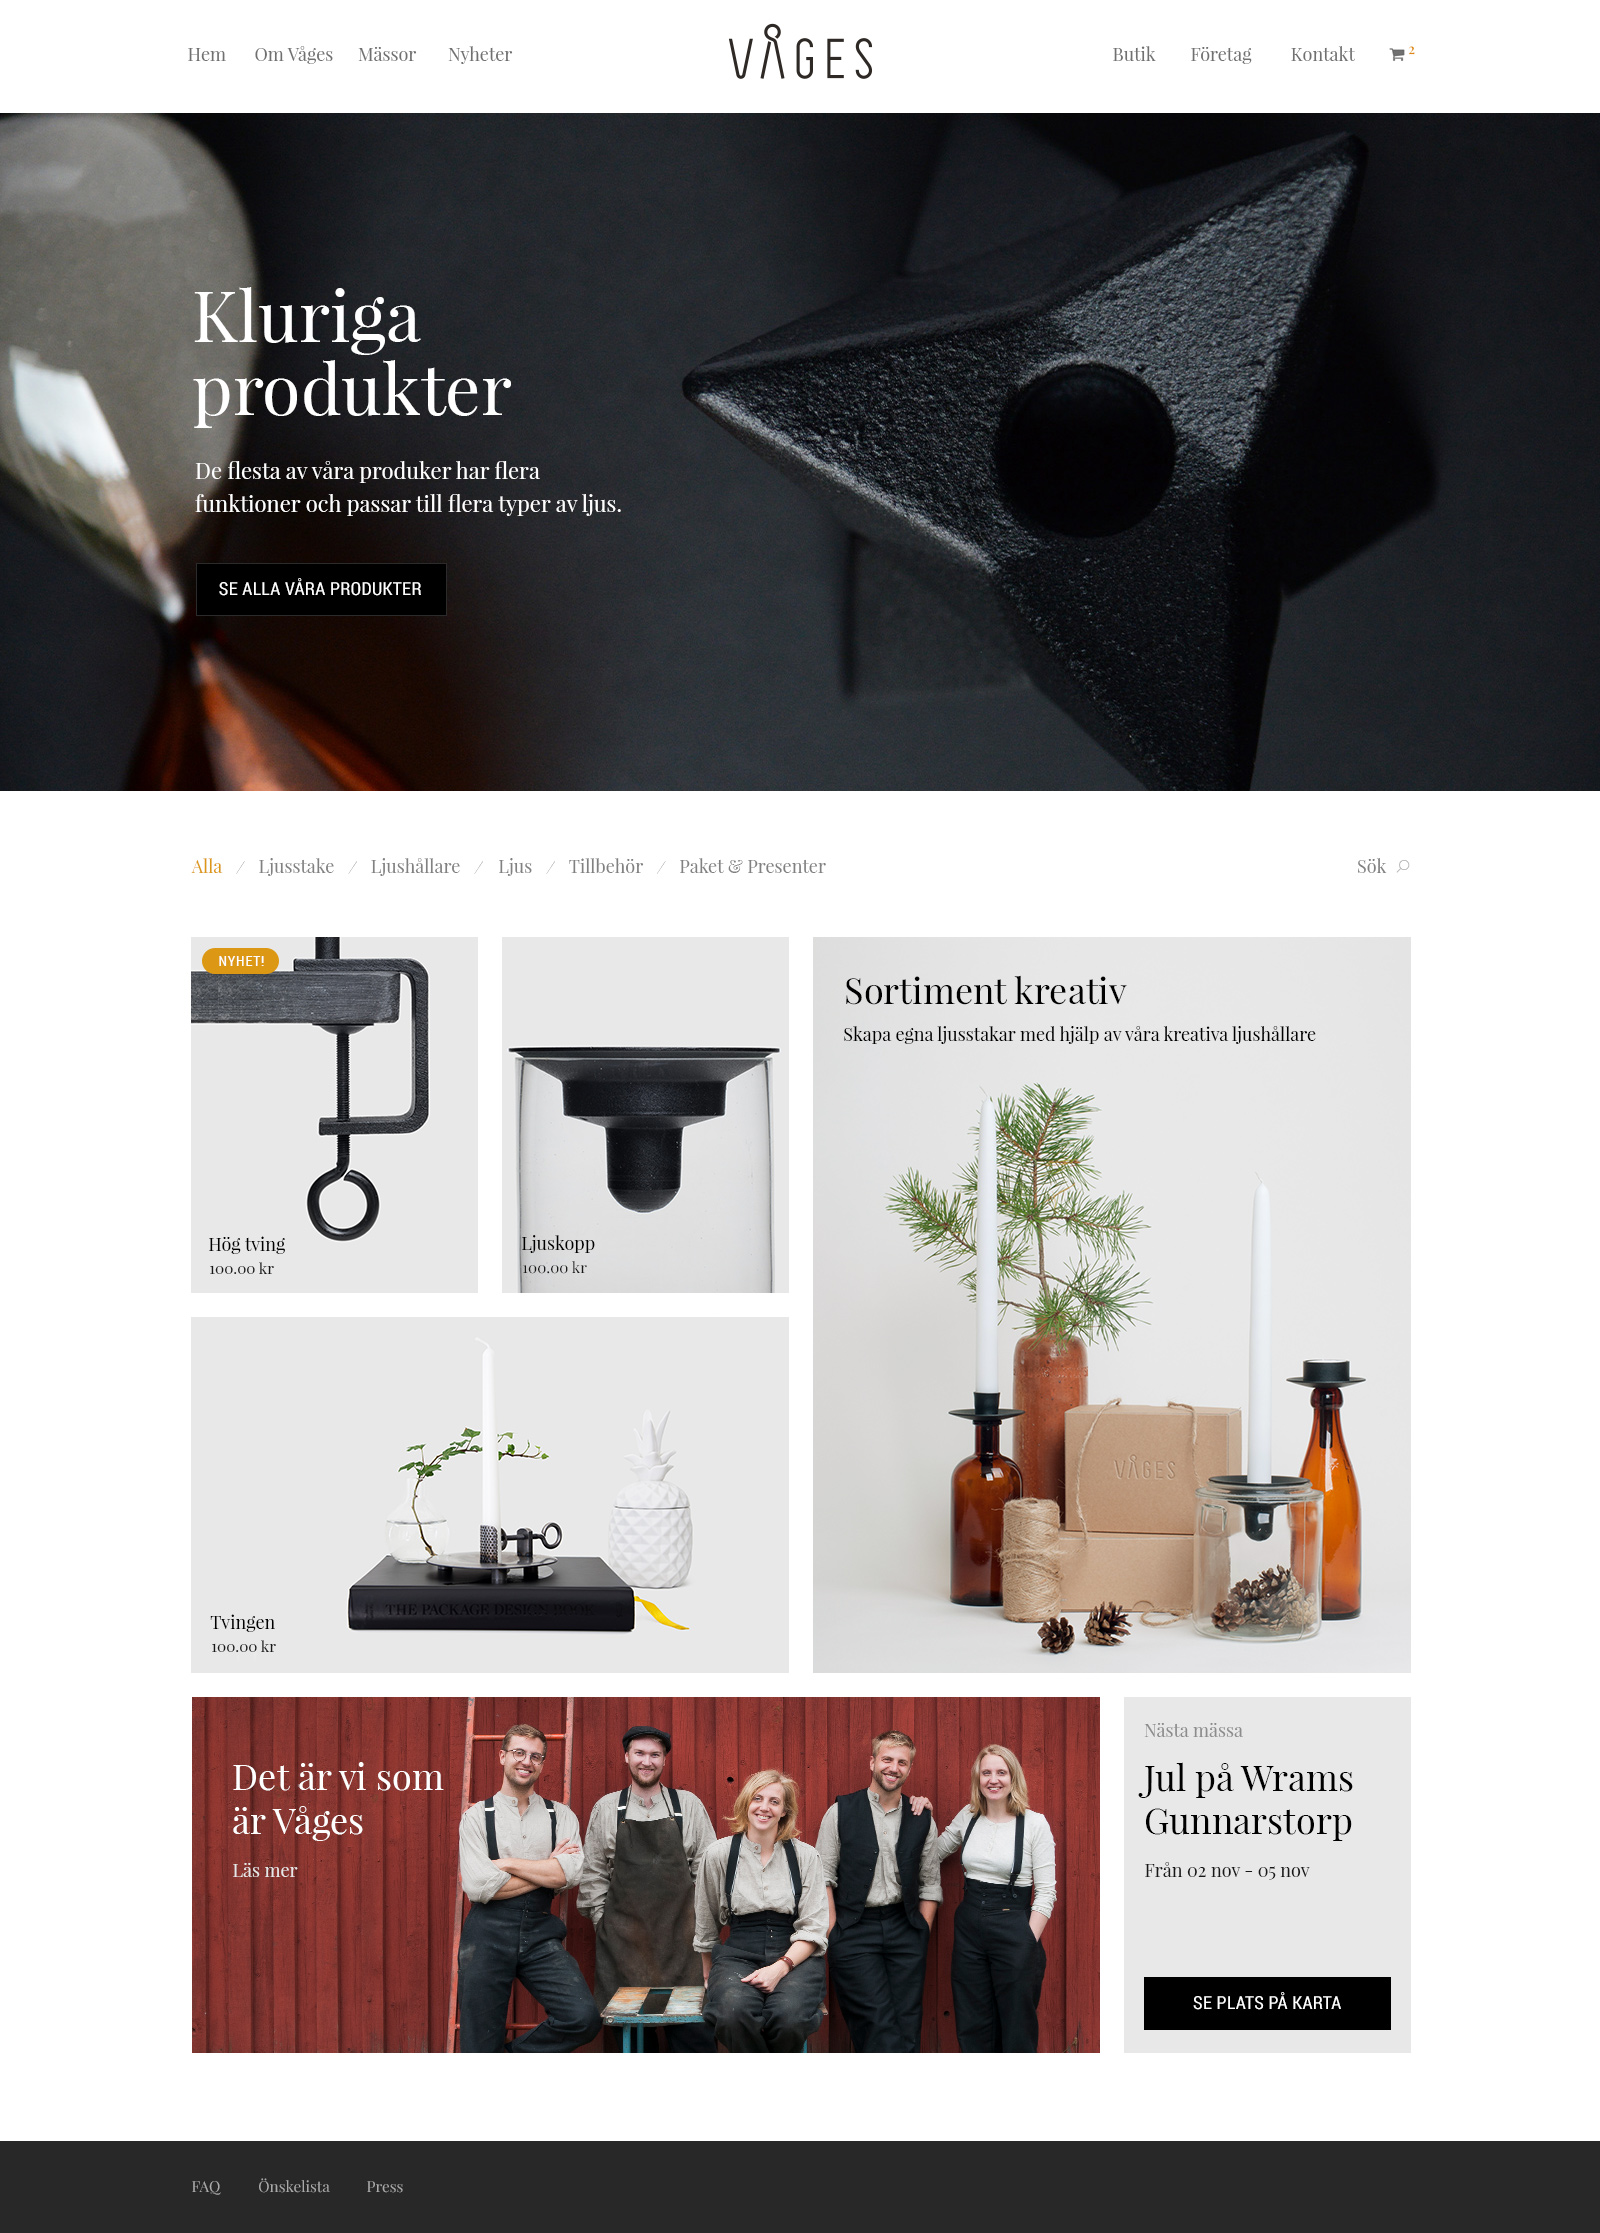 Brand Design and E-commerce website for Våges. Material from the process. UI showing front page for the Våges e-commerce web site.